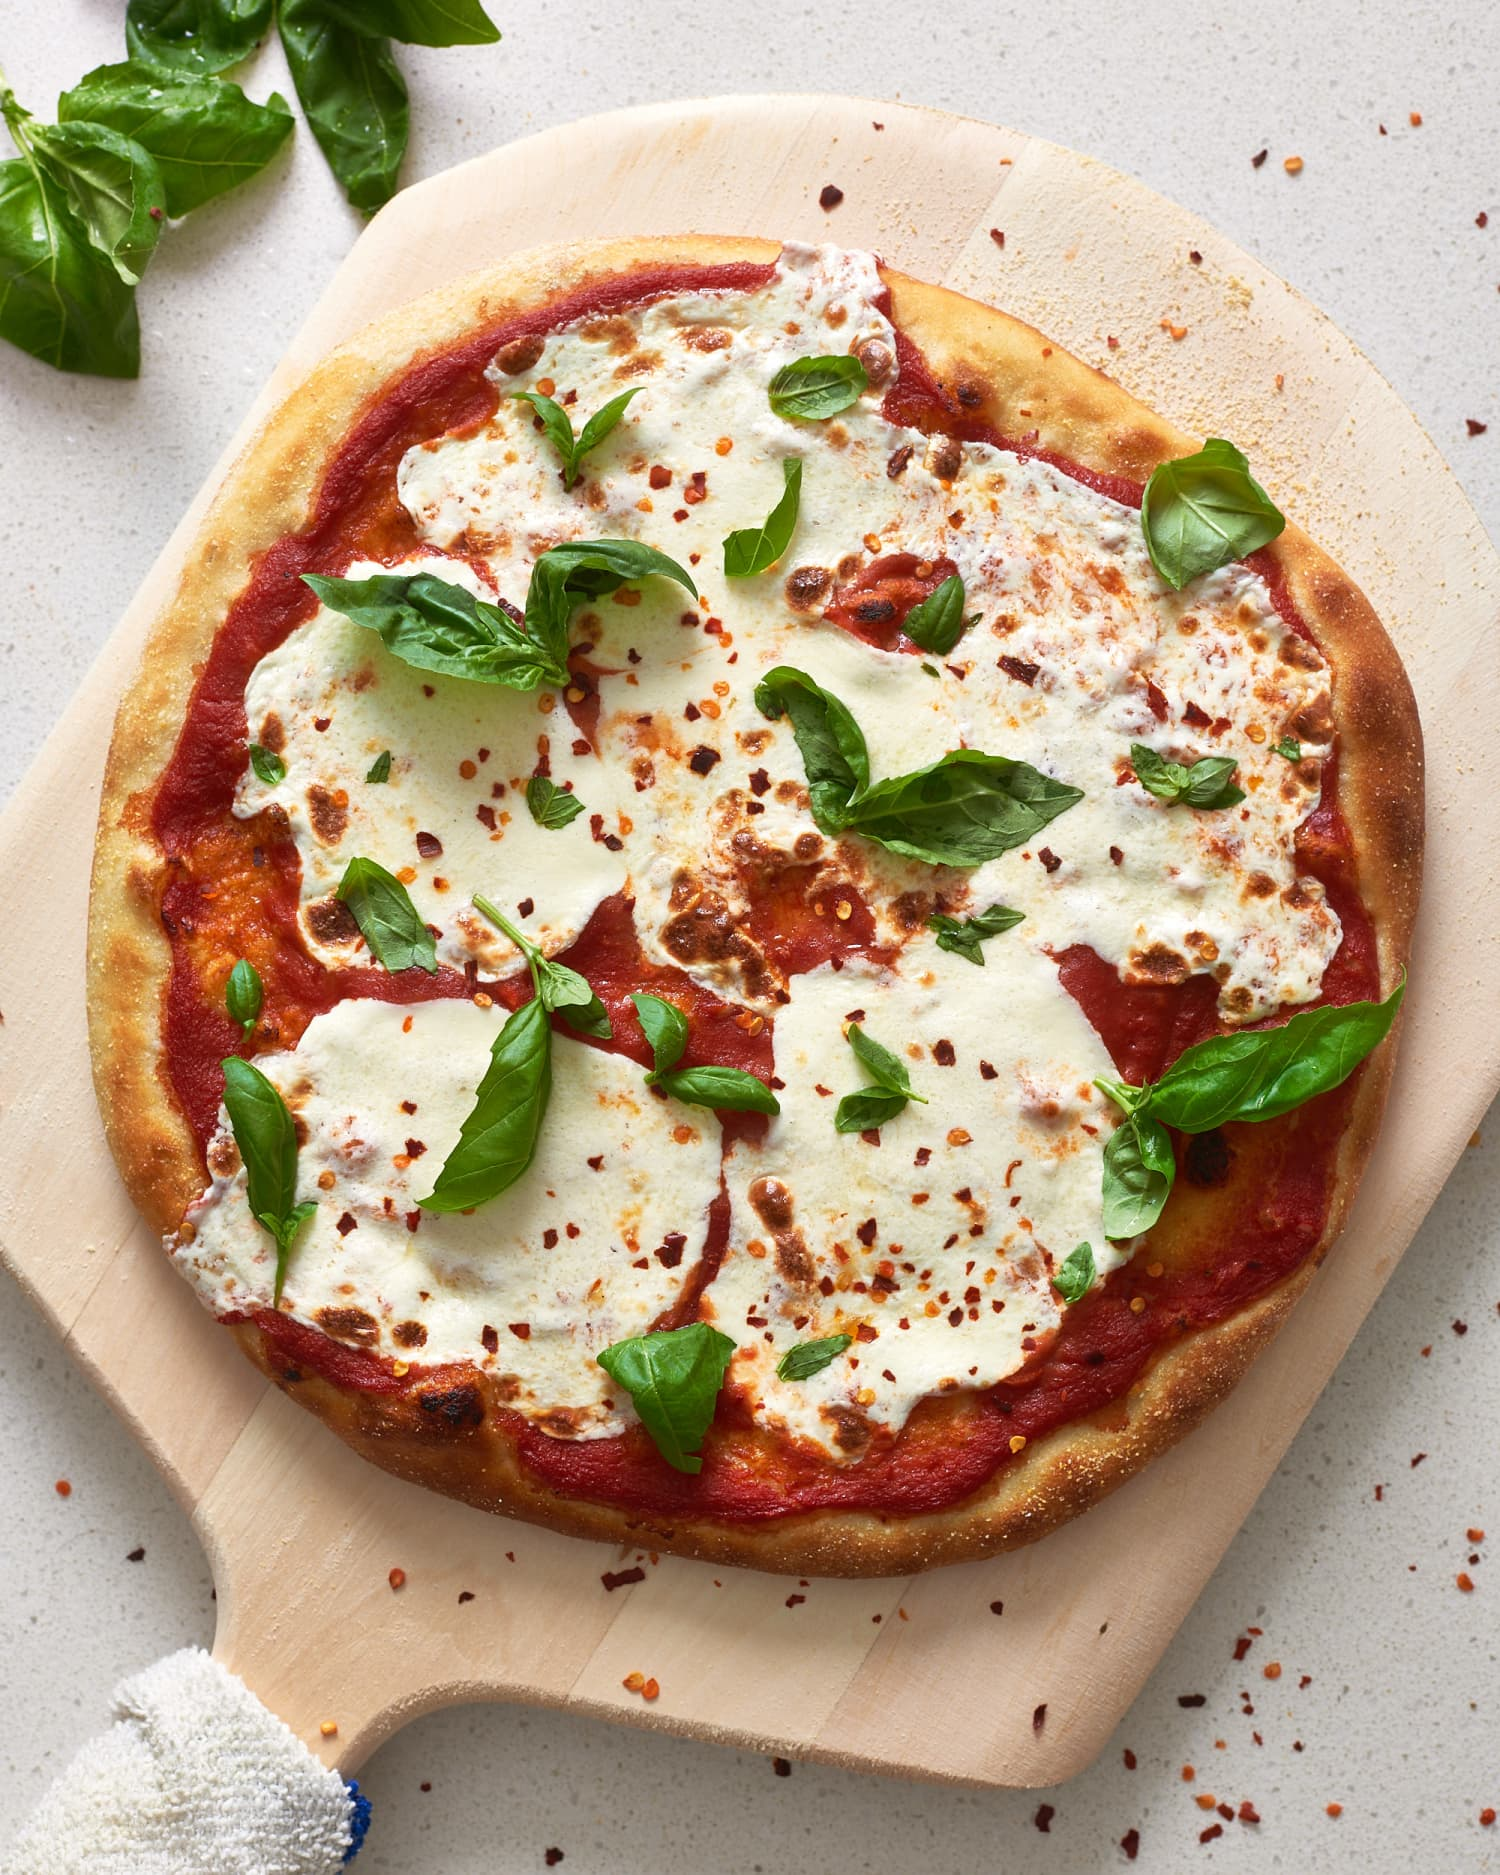 Here's Every Single Pizza Recipe in One Place